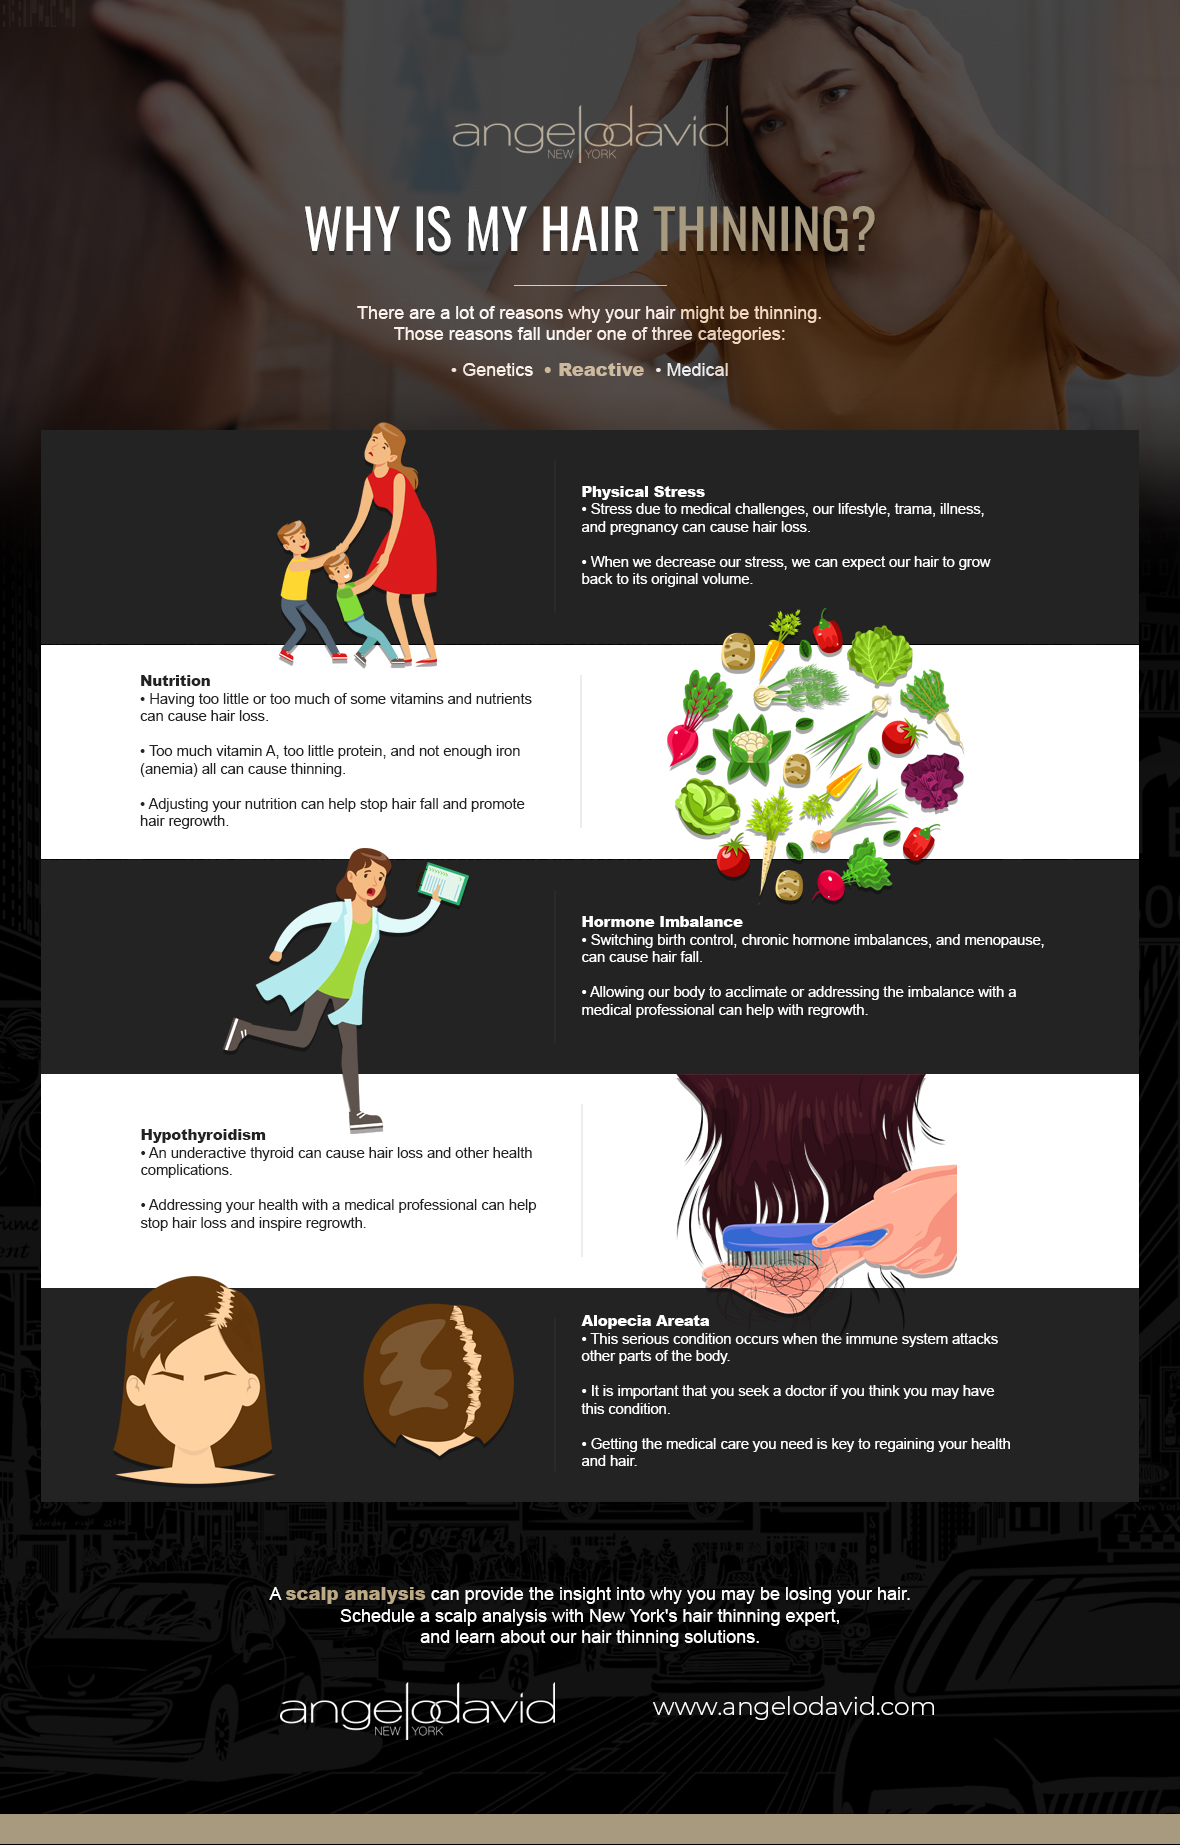 Why is My Hair Thinning Infographic